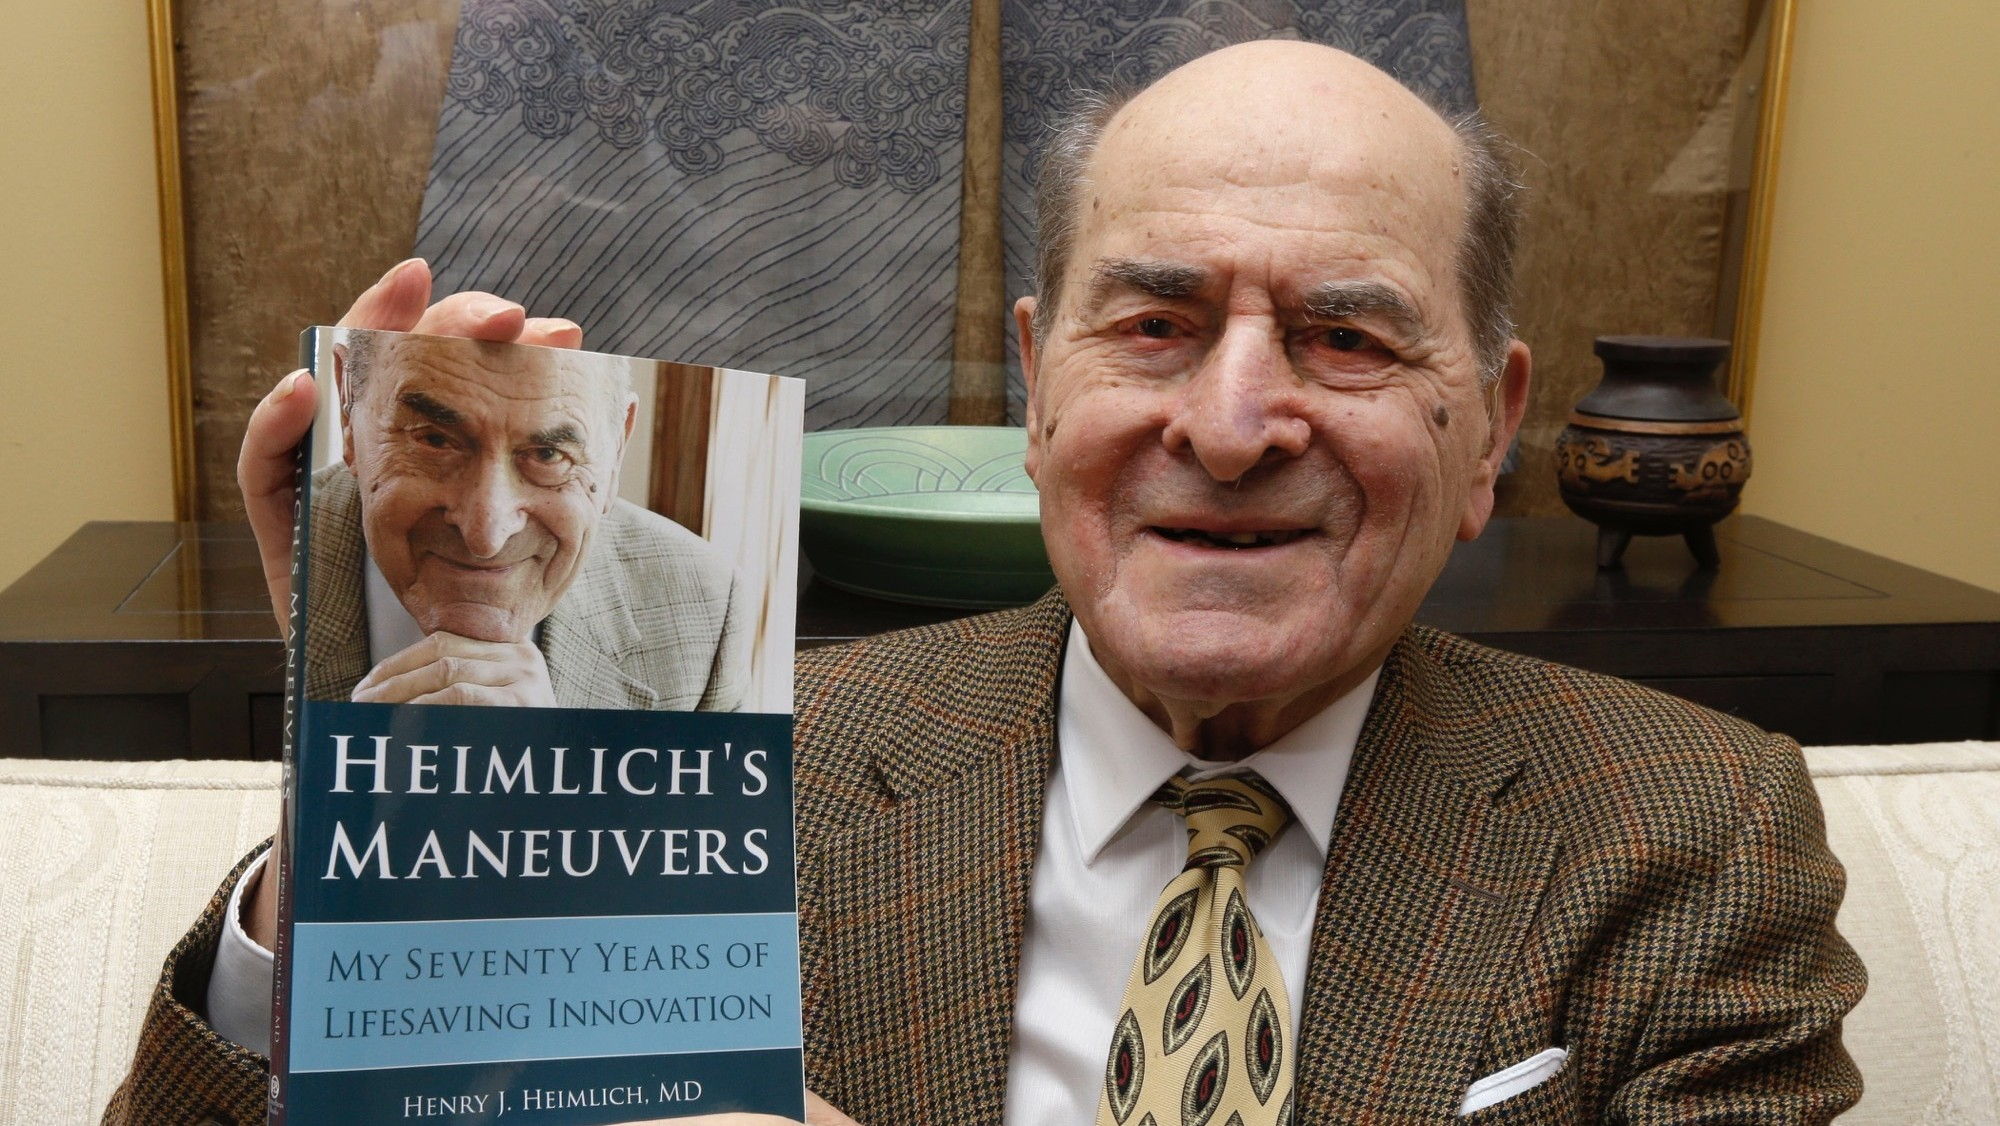 96-Year-Old Dr. Henry Heimlich Saved a Choking Woman With His Own Maneuver